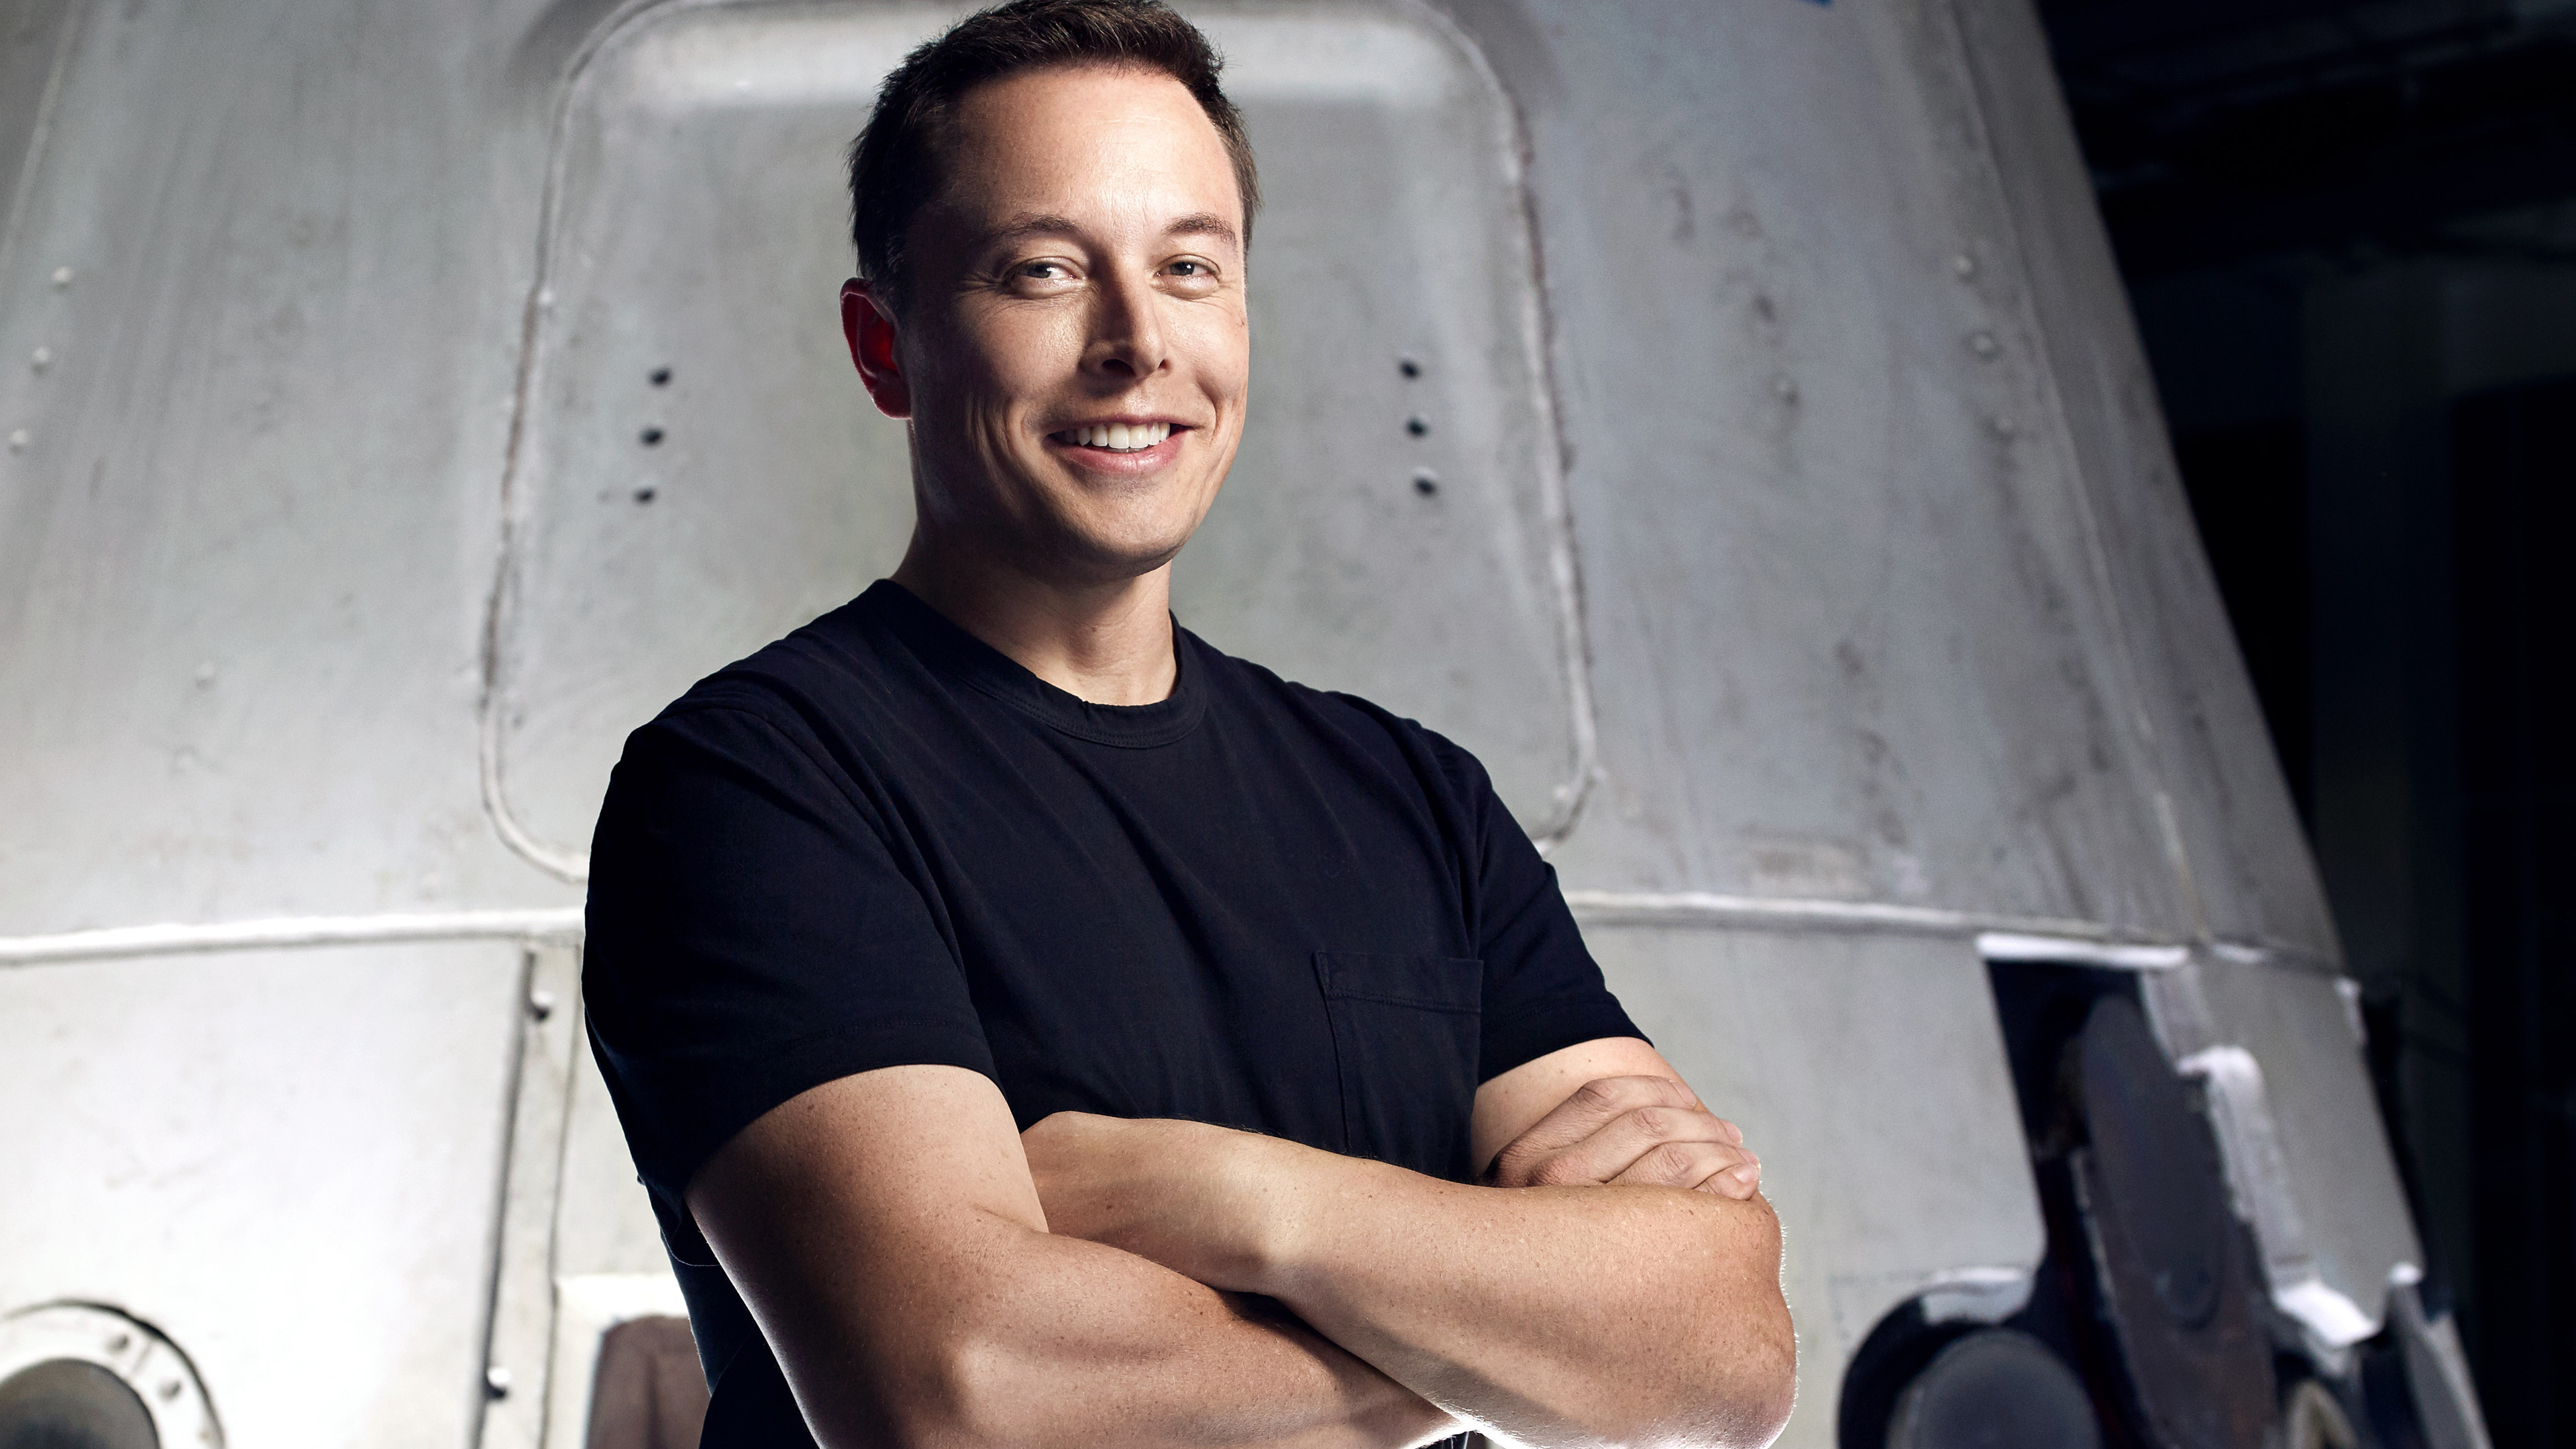 elon musk 4k 1536946303 - Elon Musk 4k - male celebrities wallpapers, hd-wallpapers, elon musk wallpapers, boys wallpapers, 4k-wallpapers